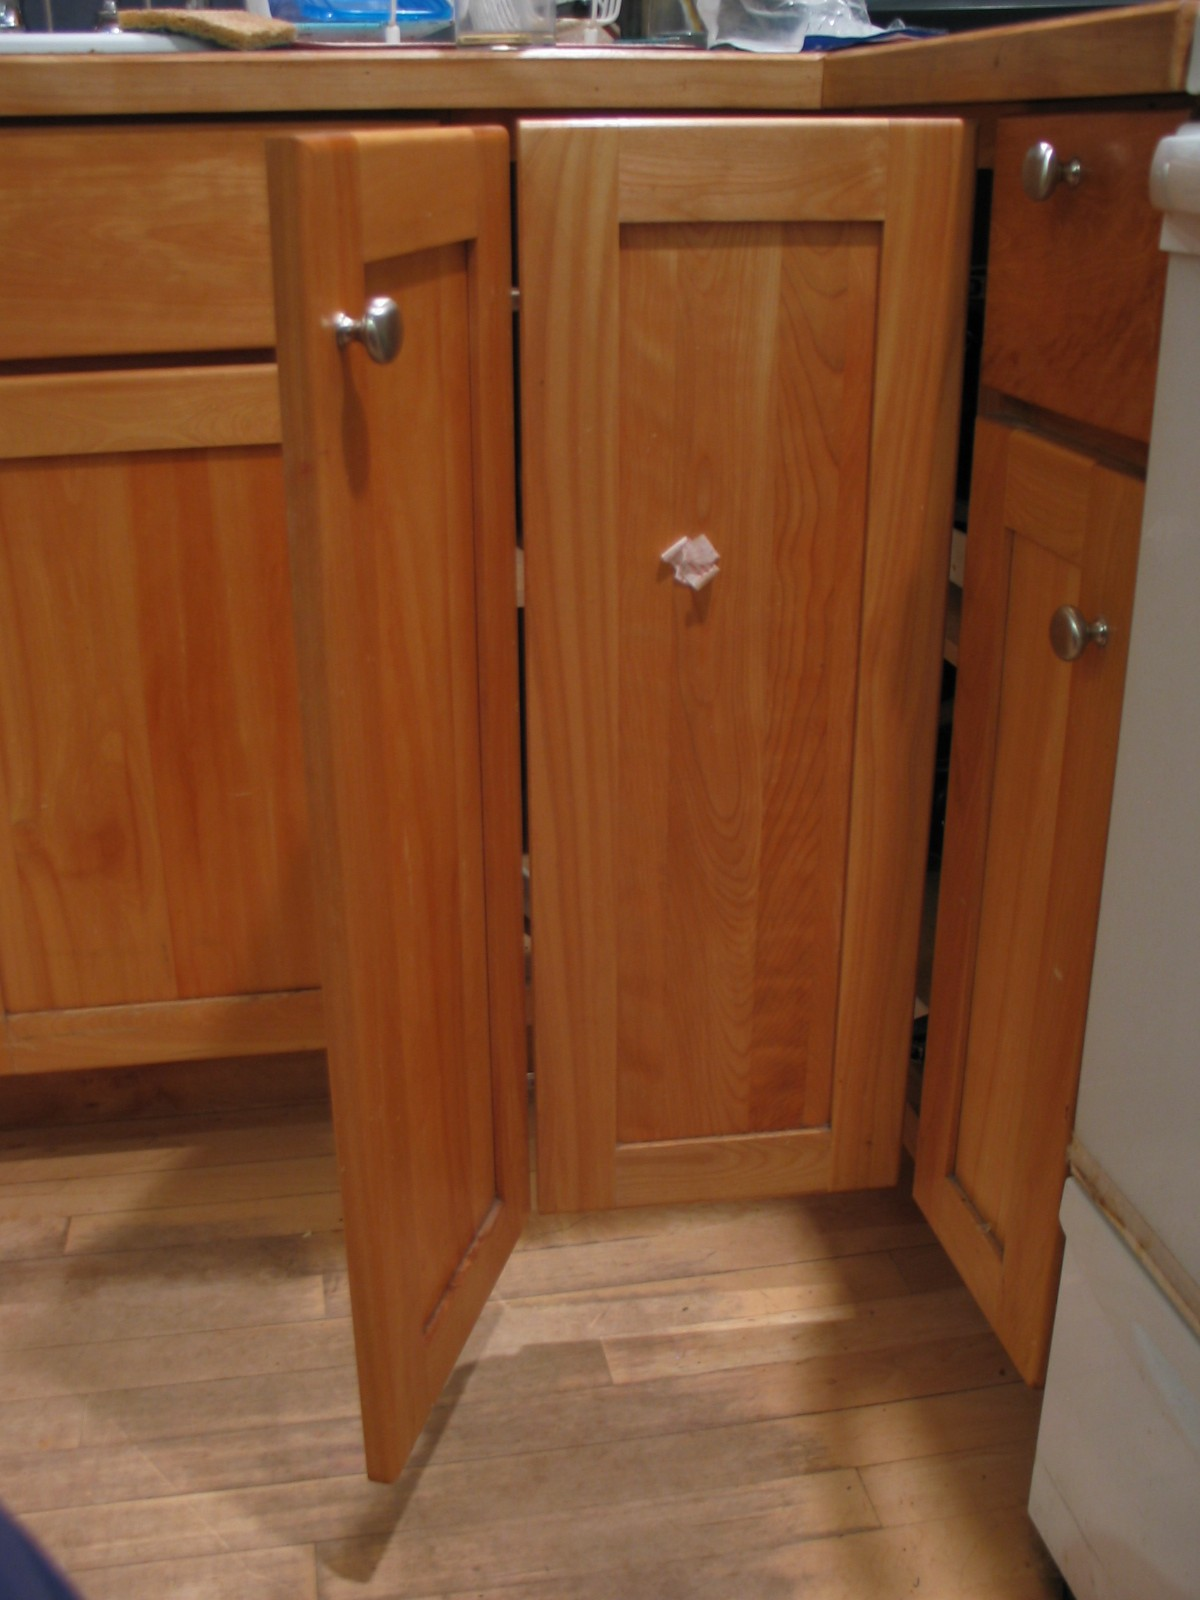 Double hinged cupboard no problem after gadget for Double kitchen cabinets